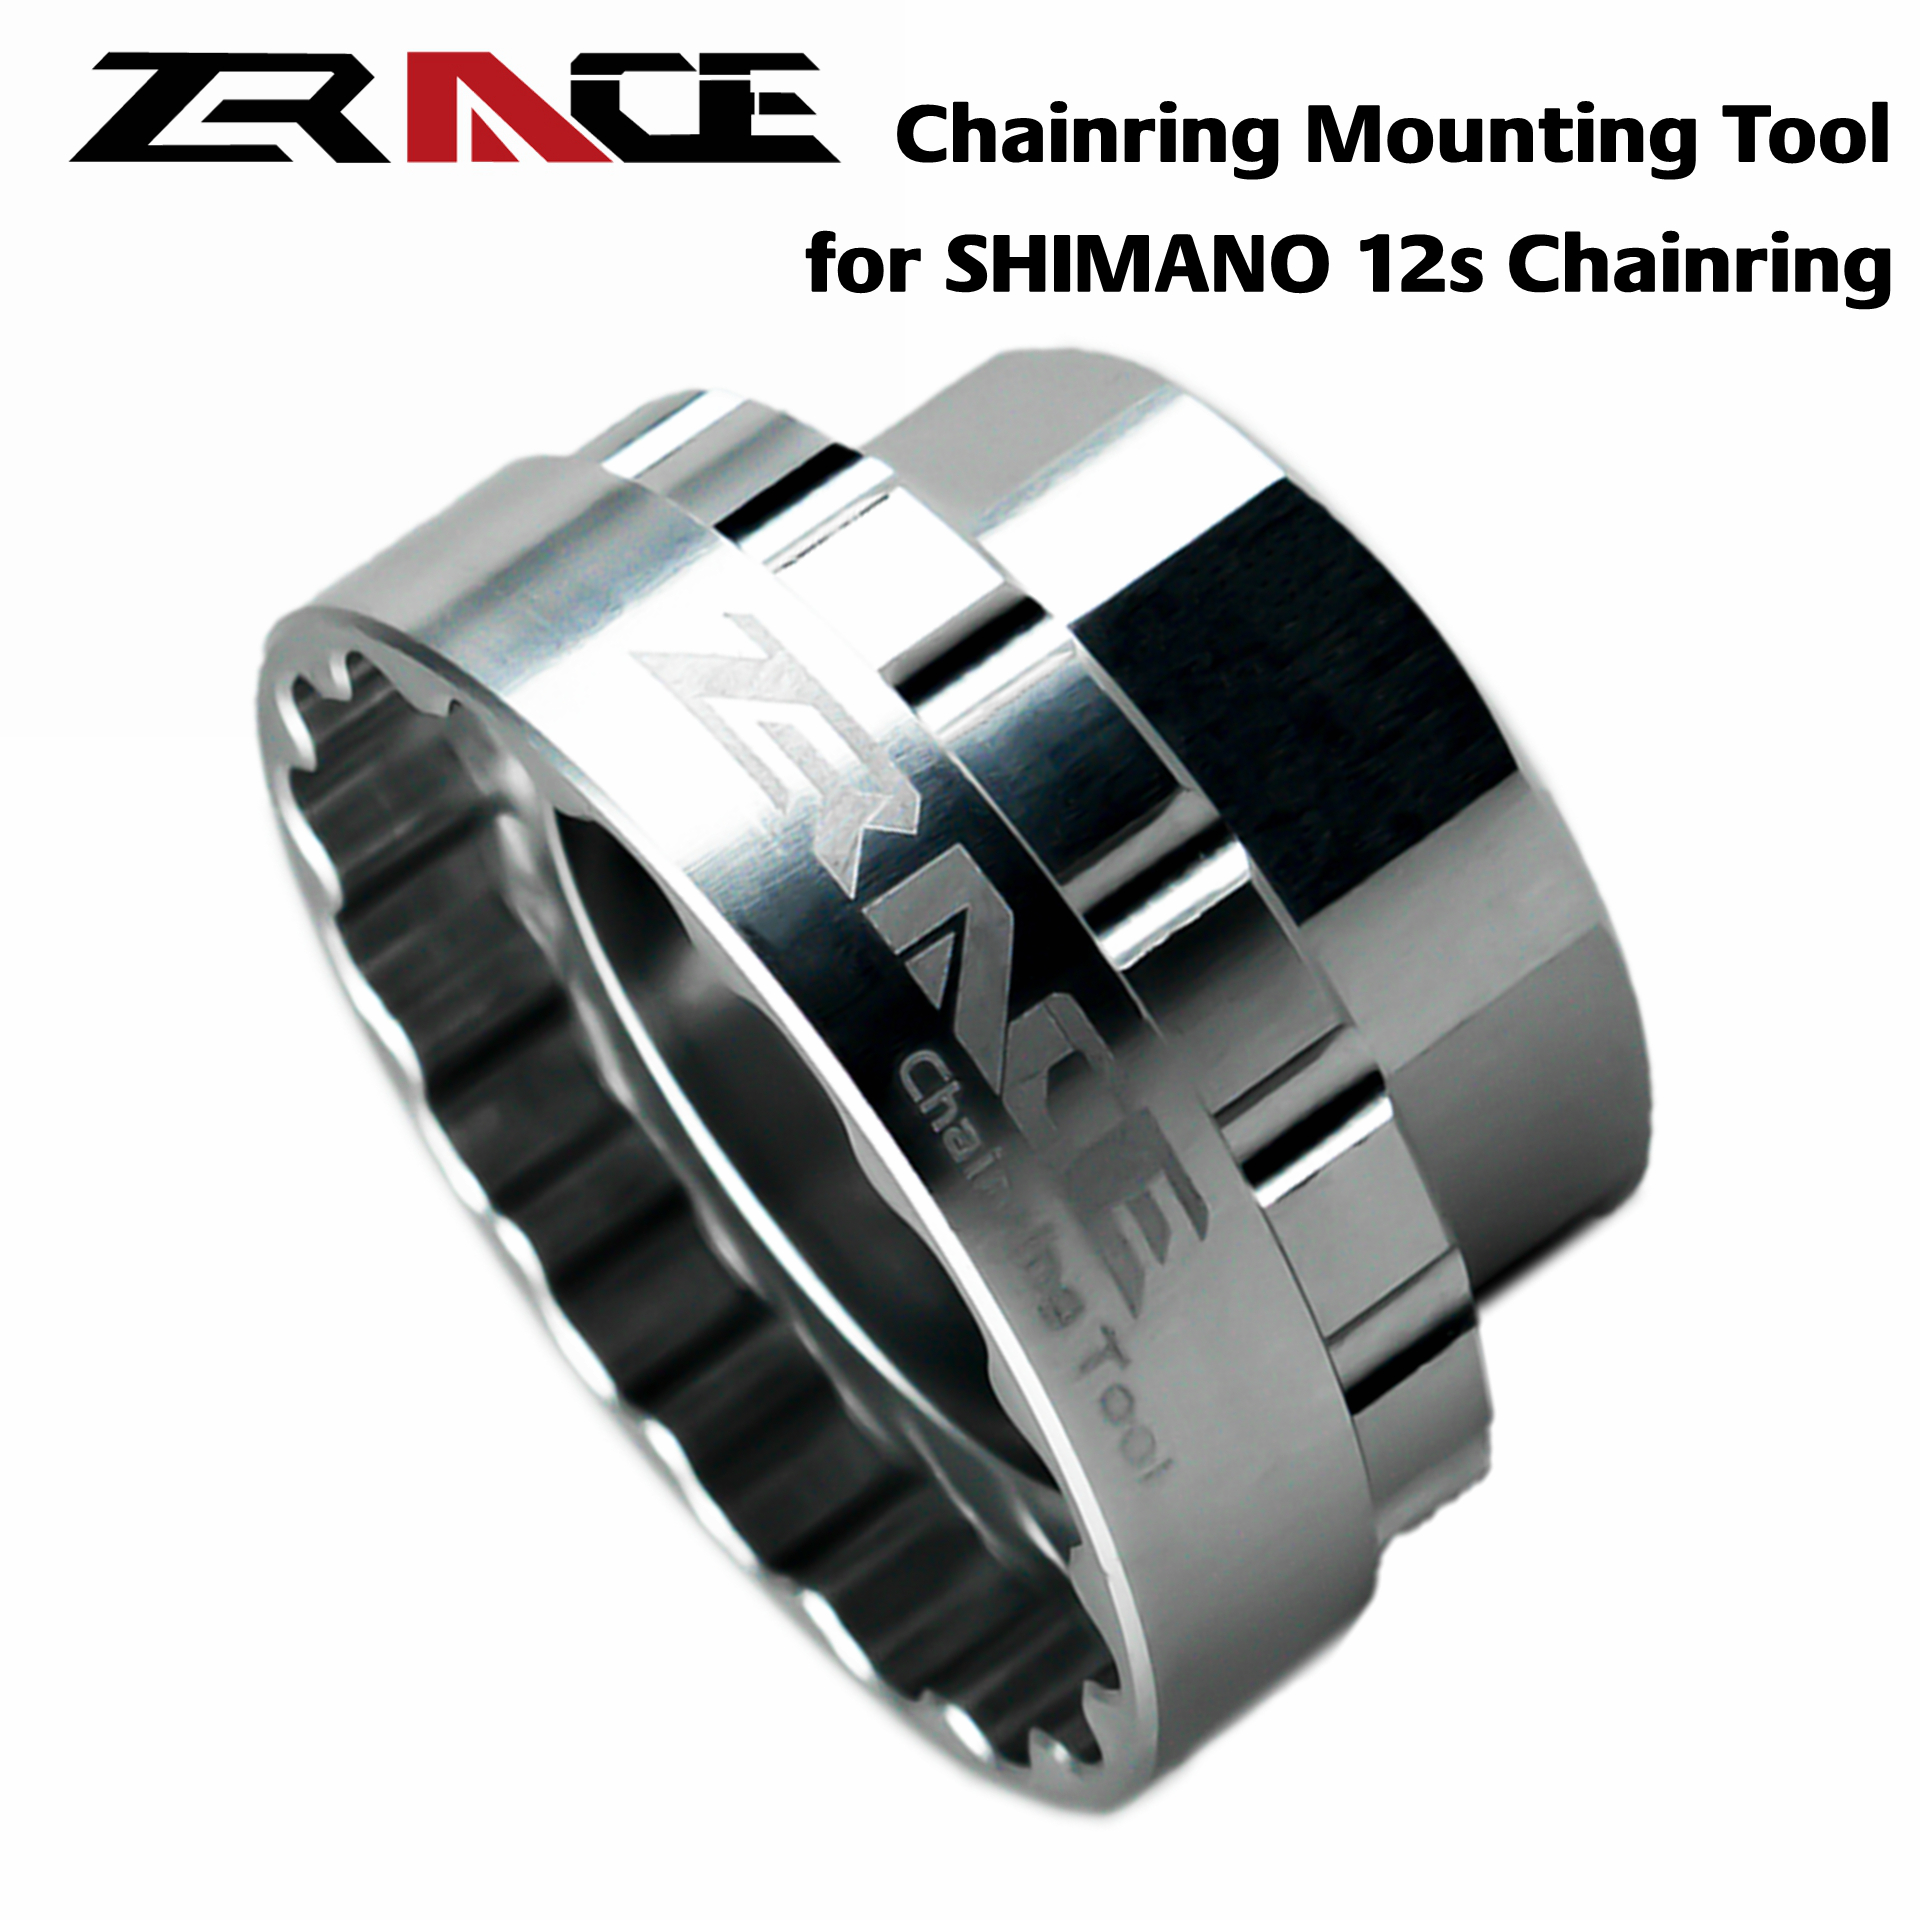 ZRACE Shimano 12s Chainrings Mounting Tool For SM-CRM95 / SM-CRM85 / SM-CRM75, TL-FC41 / FC41,Direct Mount Repair Tool Crankset